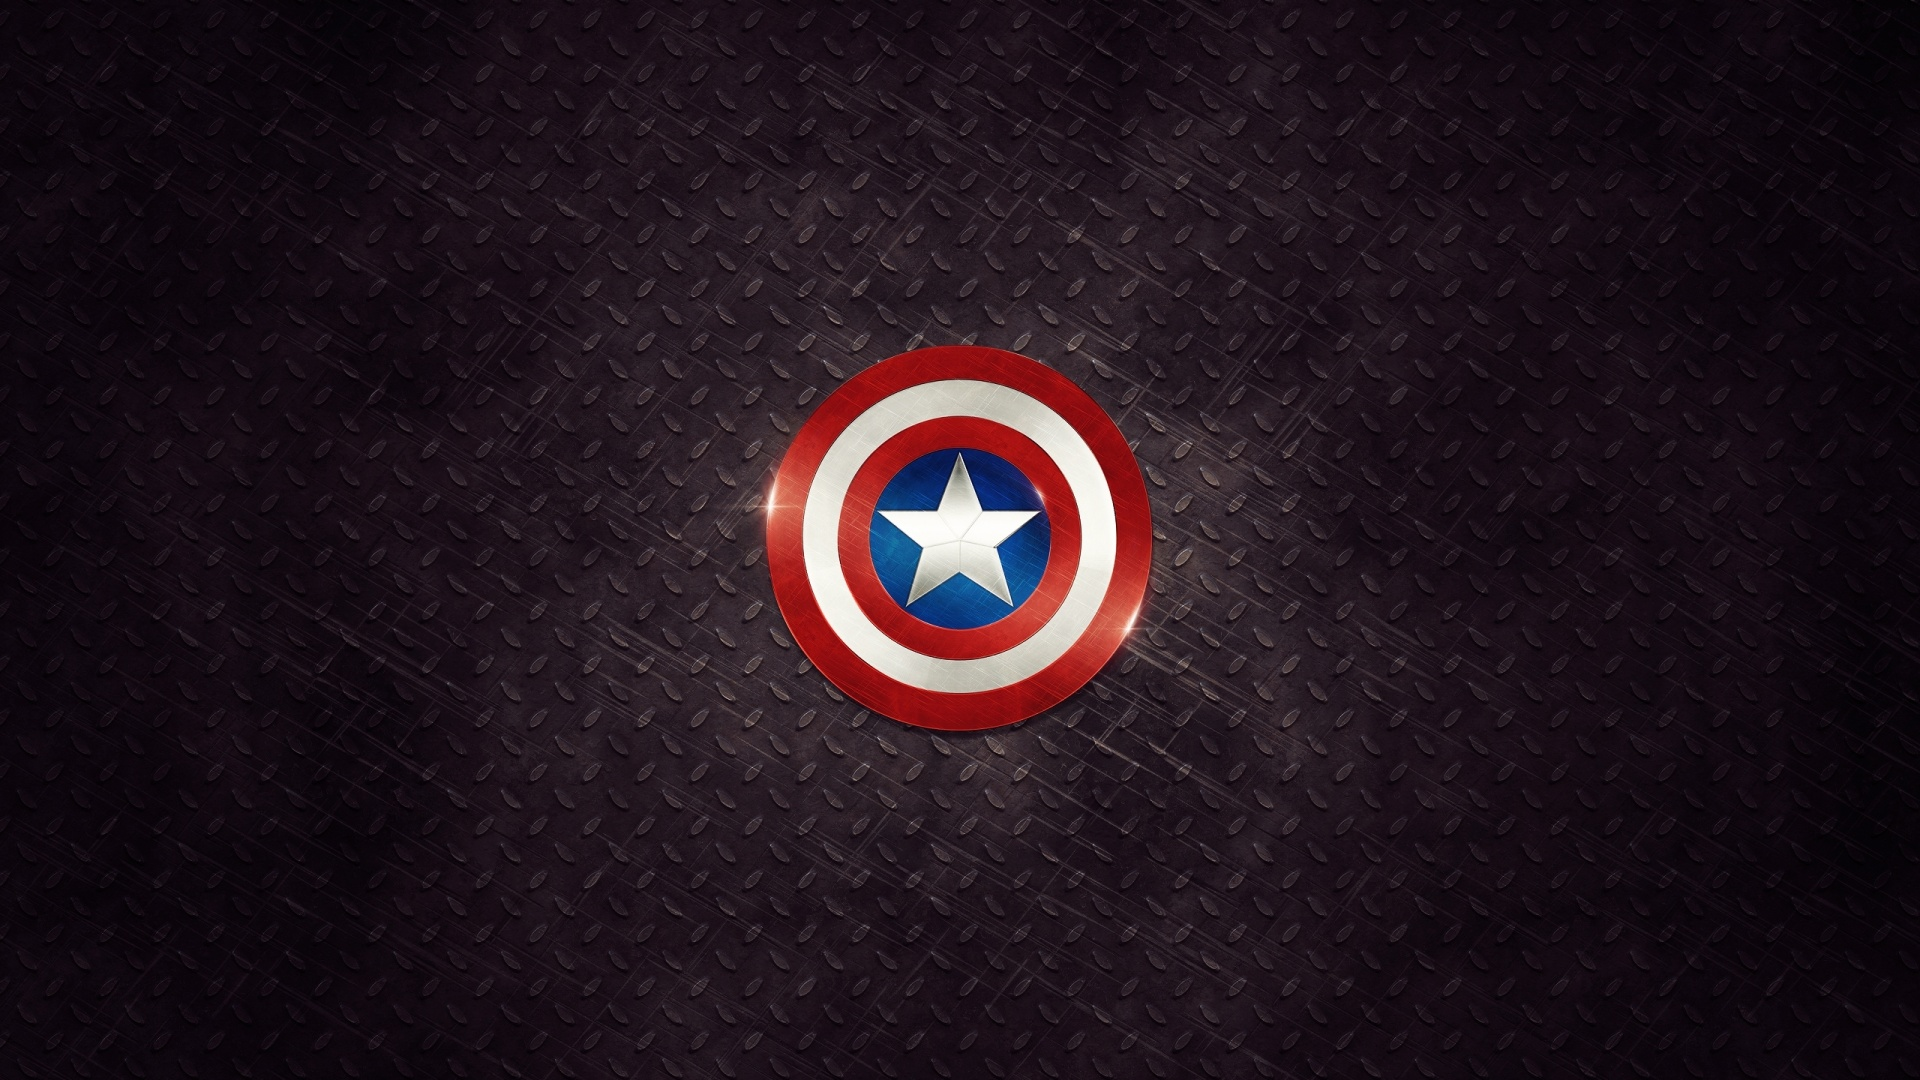 Captain America Logo Wallpapers   1920x1080   610017 1920x1080